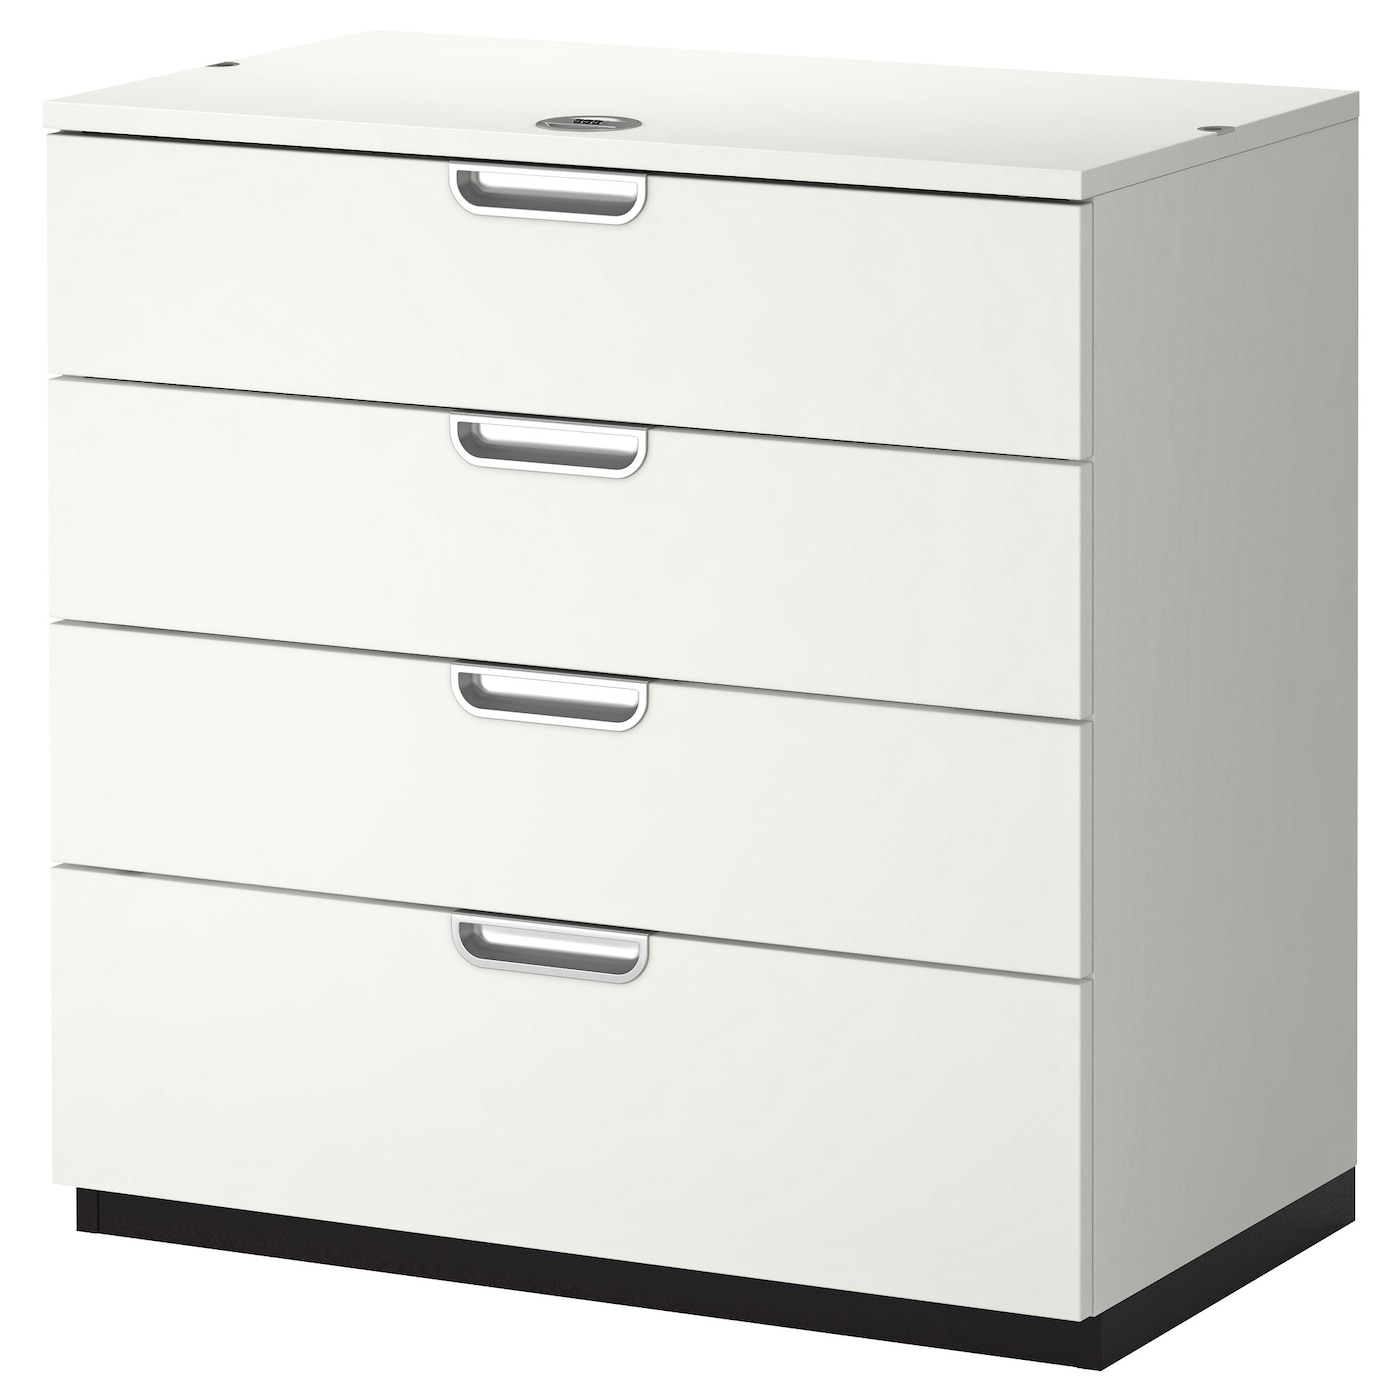 galant drawer unit white 80x80 cm ikea. Black Bedroom Furniture Sets. Home Design Ideas